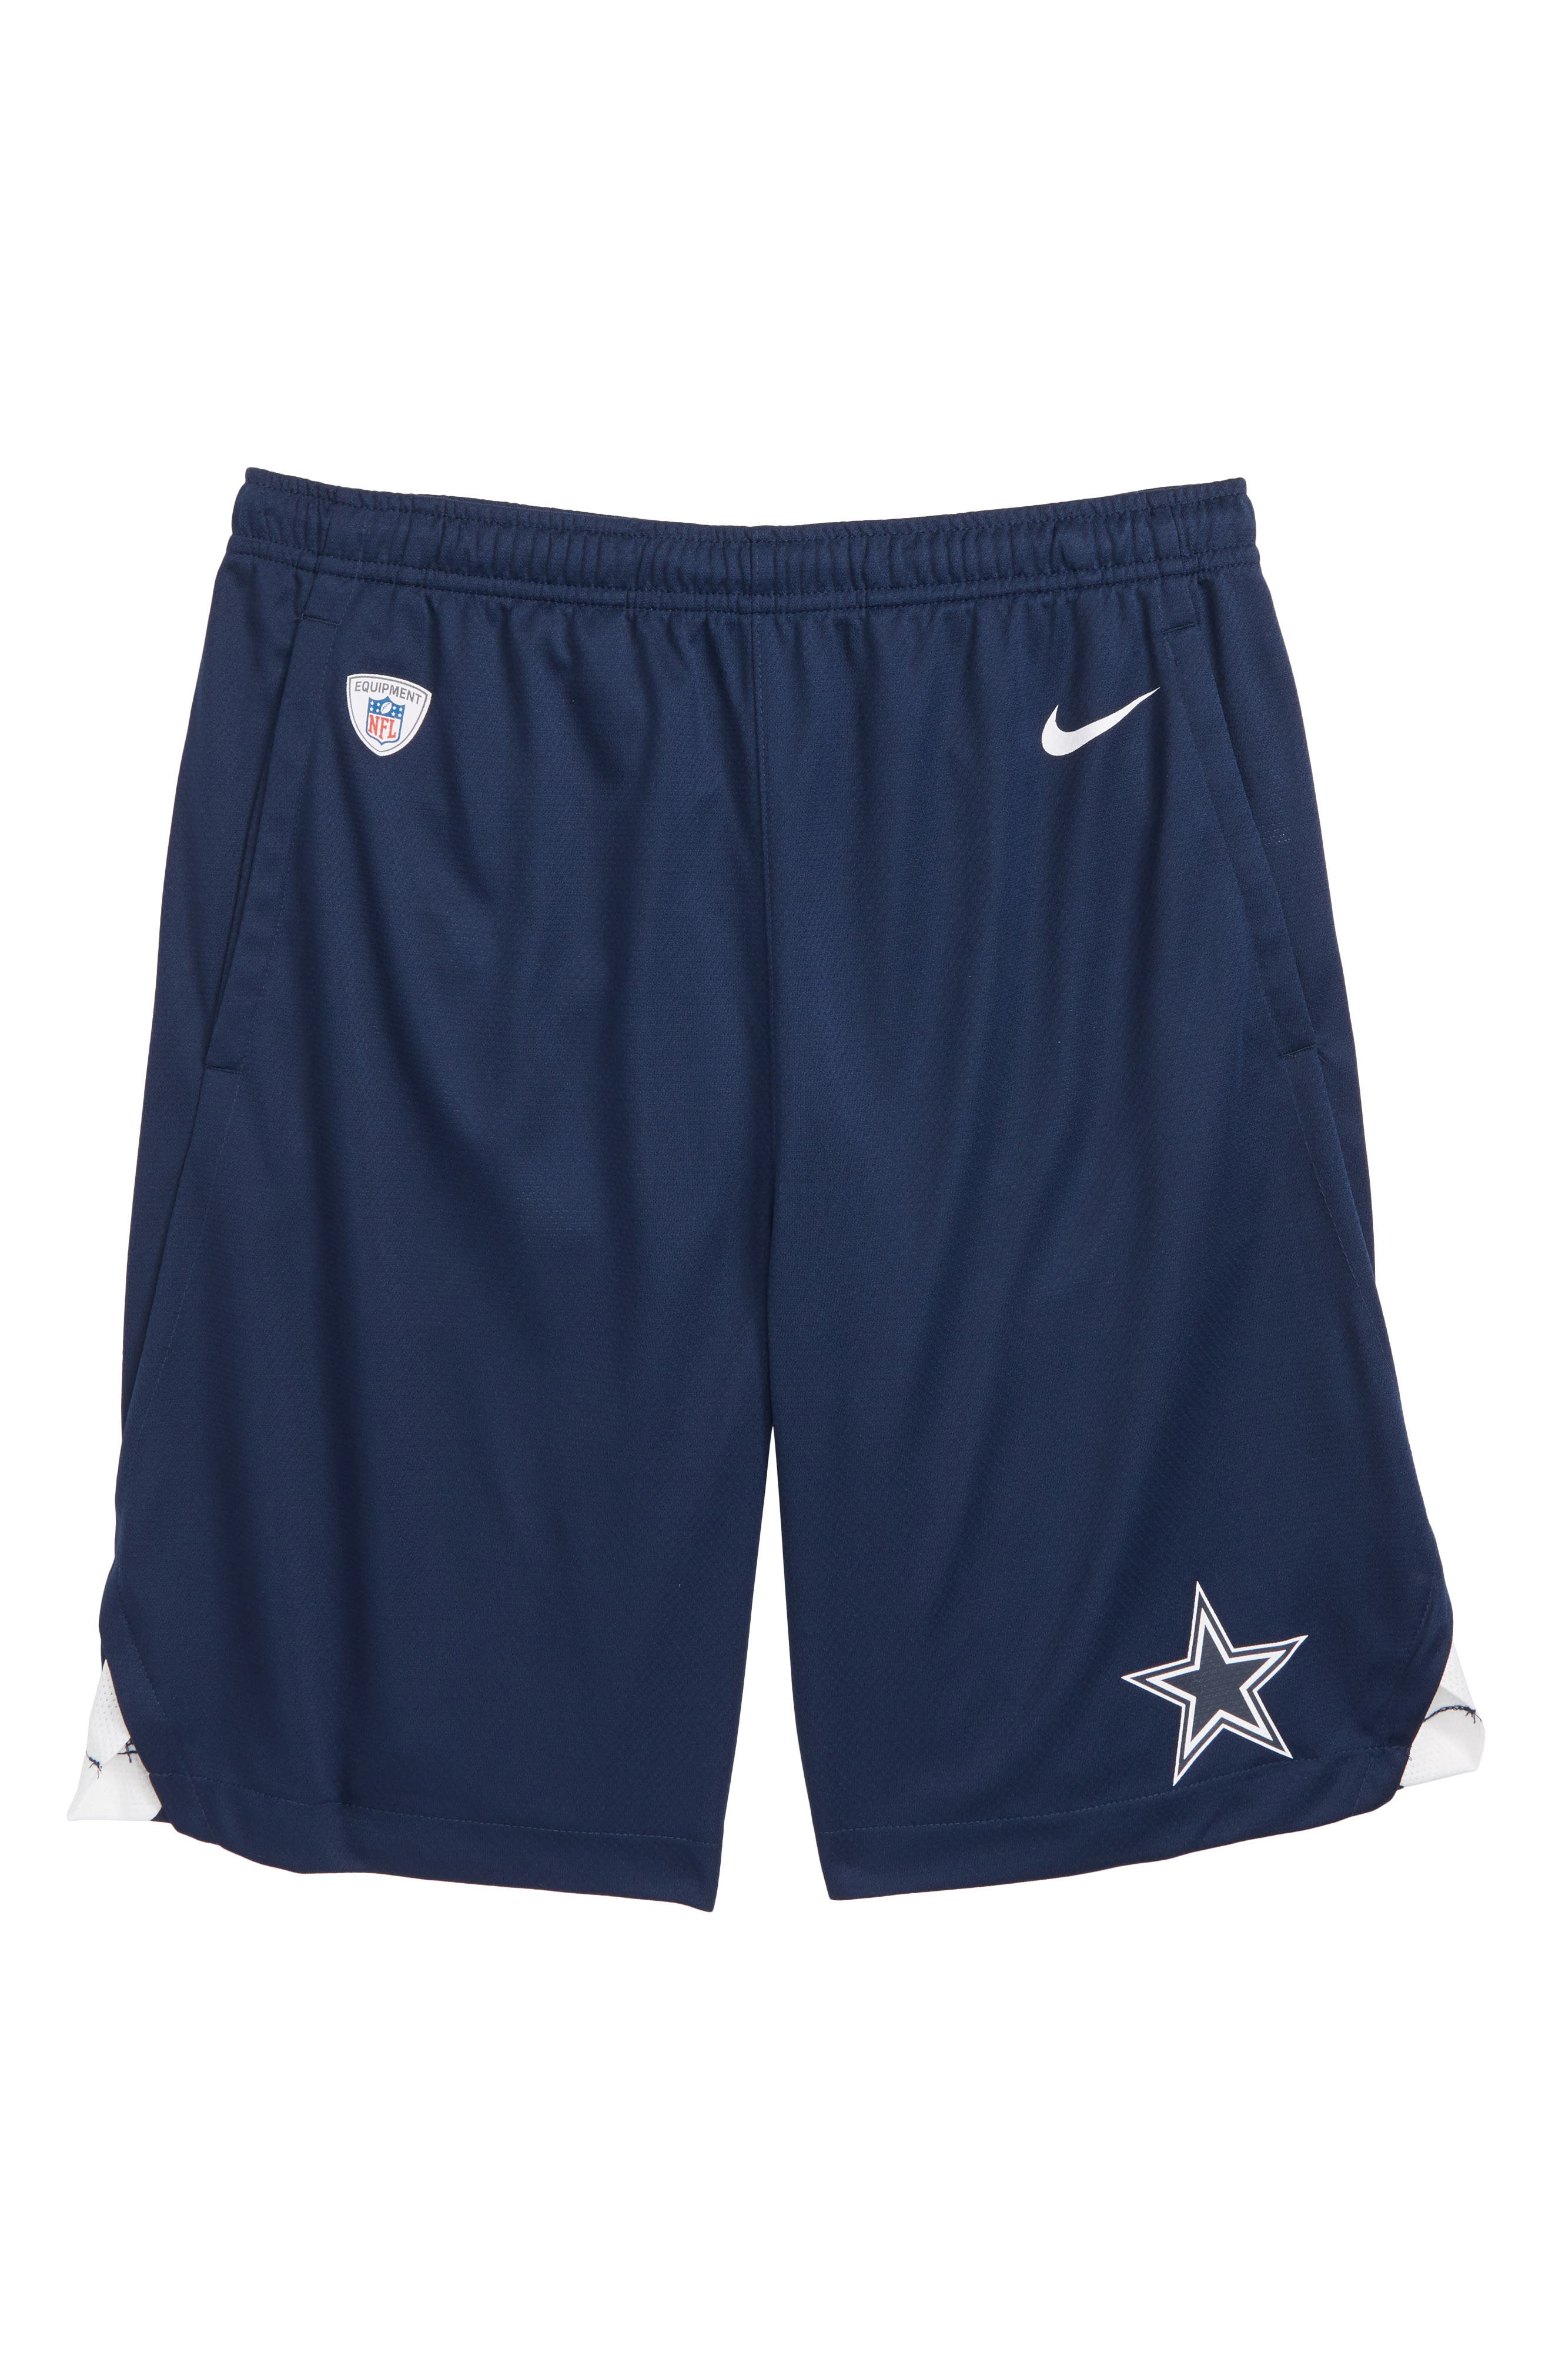 Nike NFL Dallas Cowboys Dry Knit Shorts,                         Main,                         color, NAVY